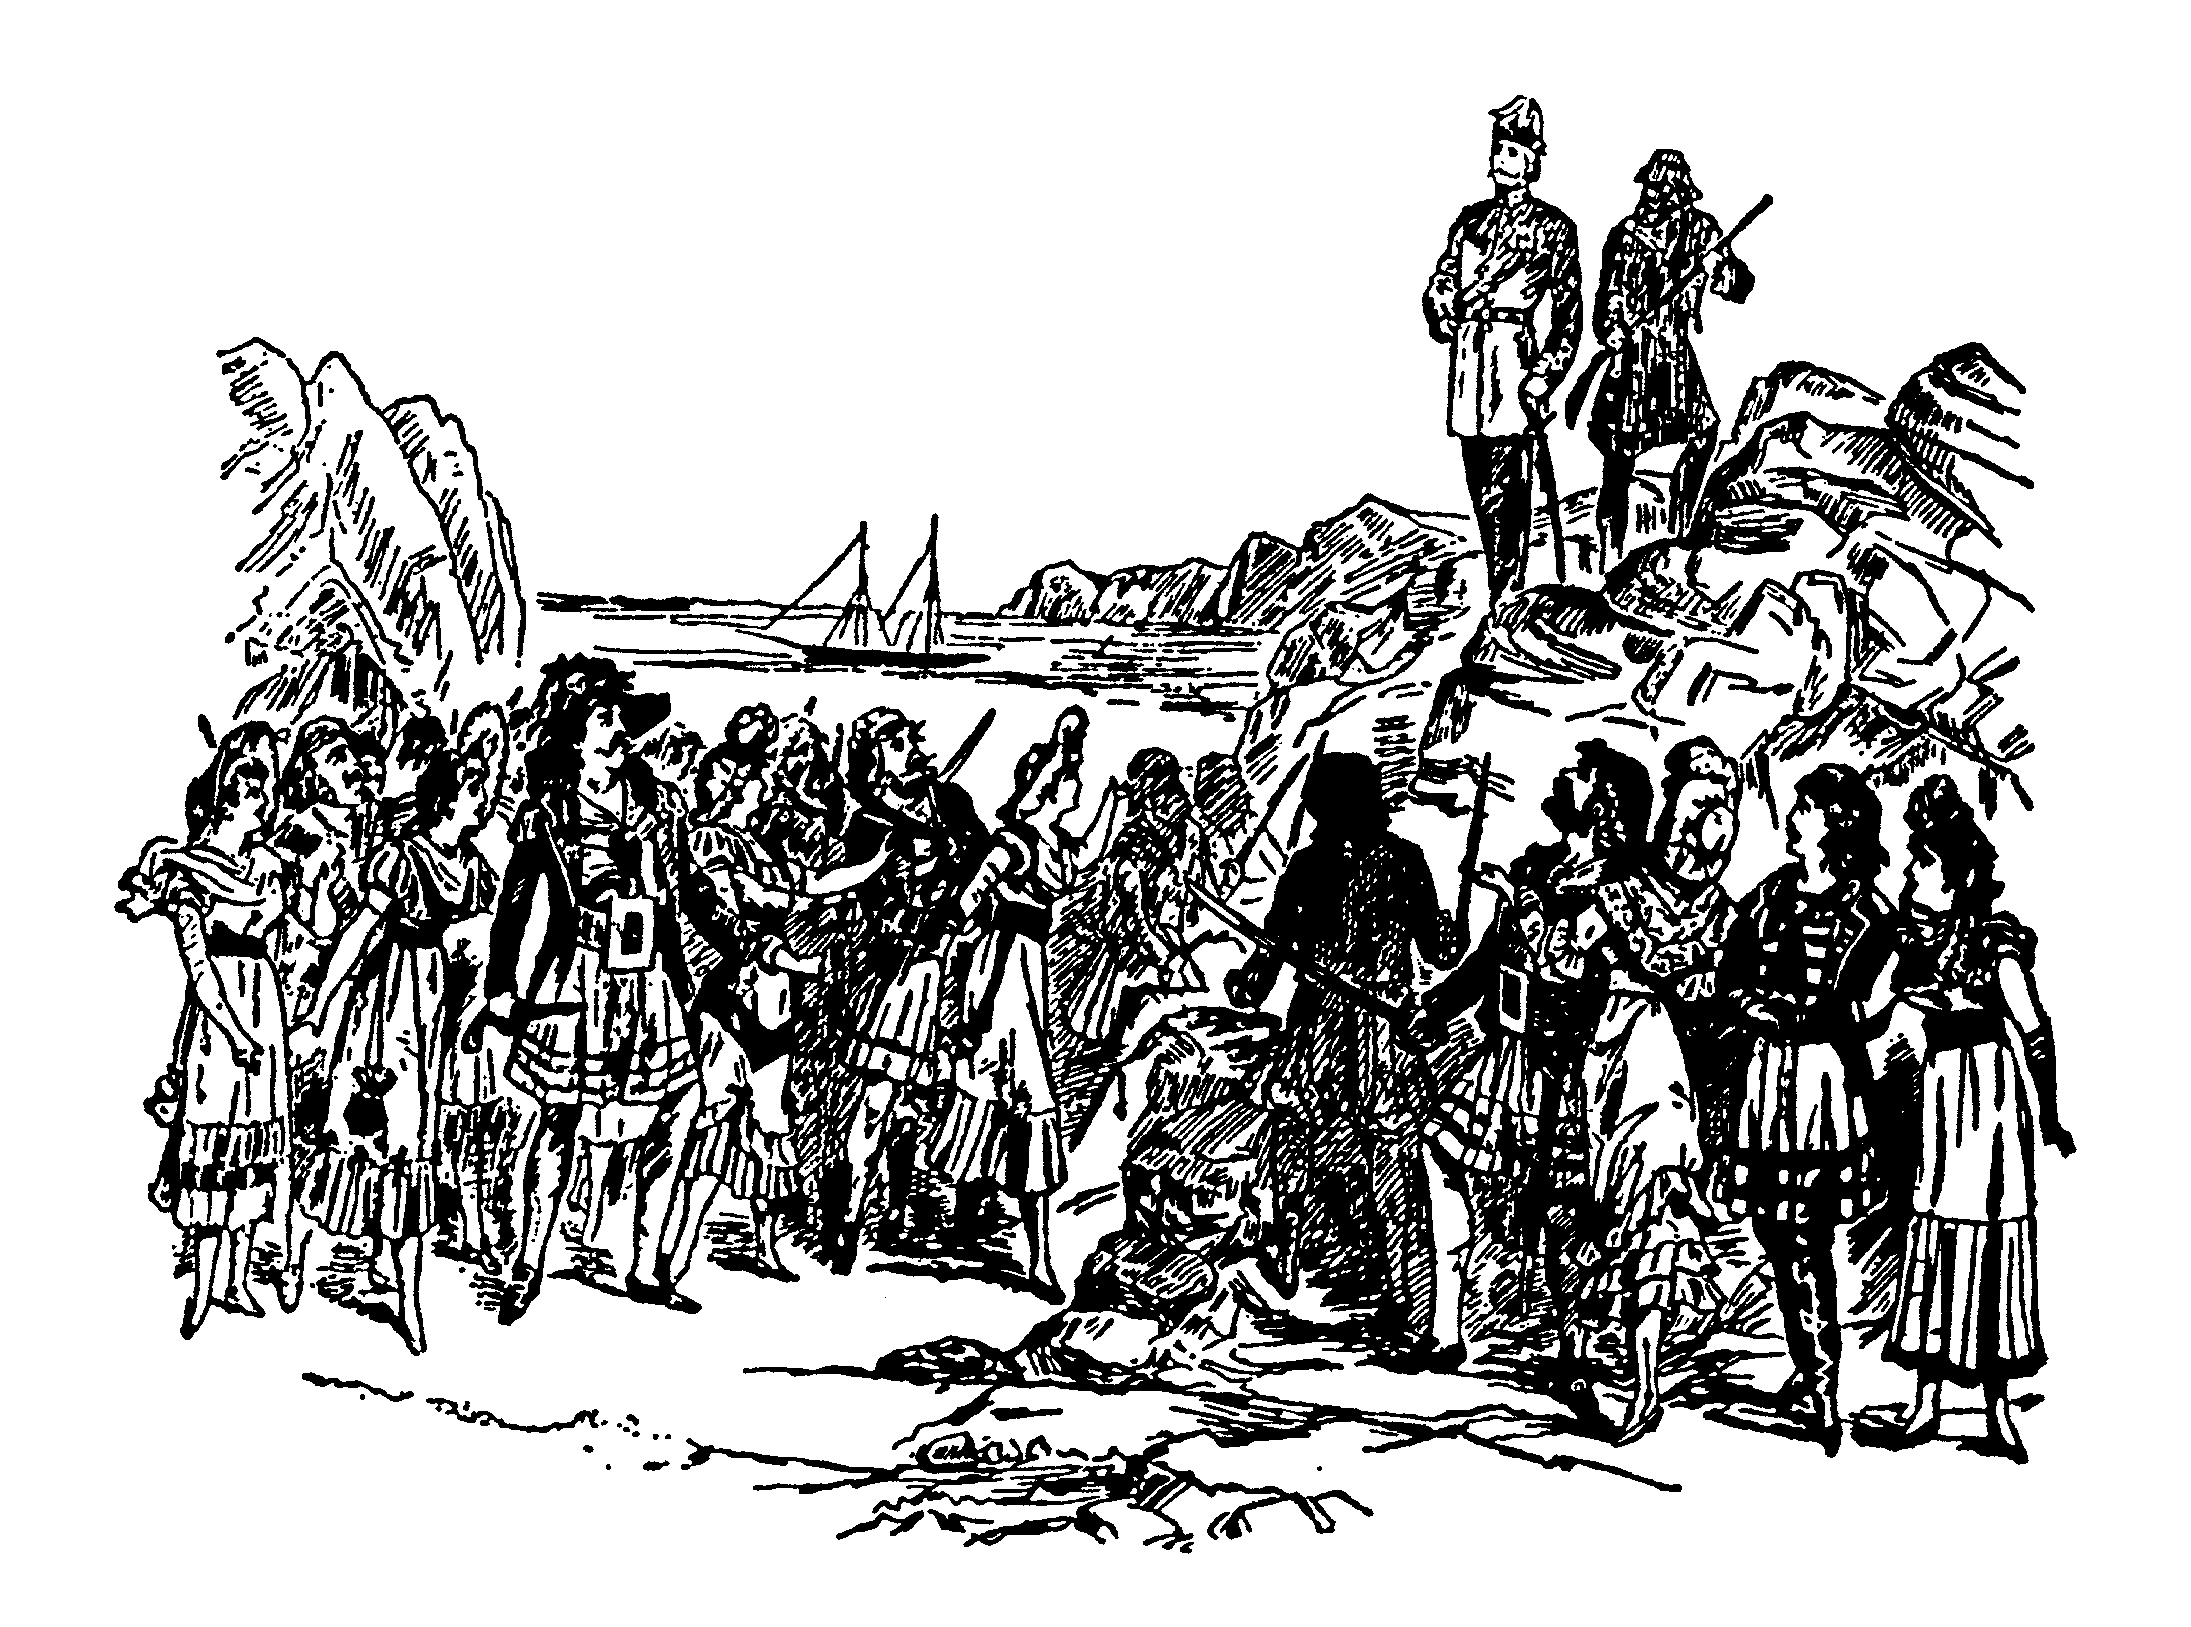 The Pirates of Penzance by W. S. Gilbert and Arthur Sullivan